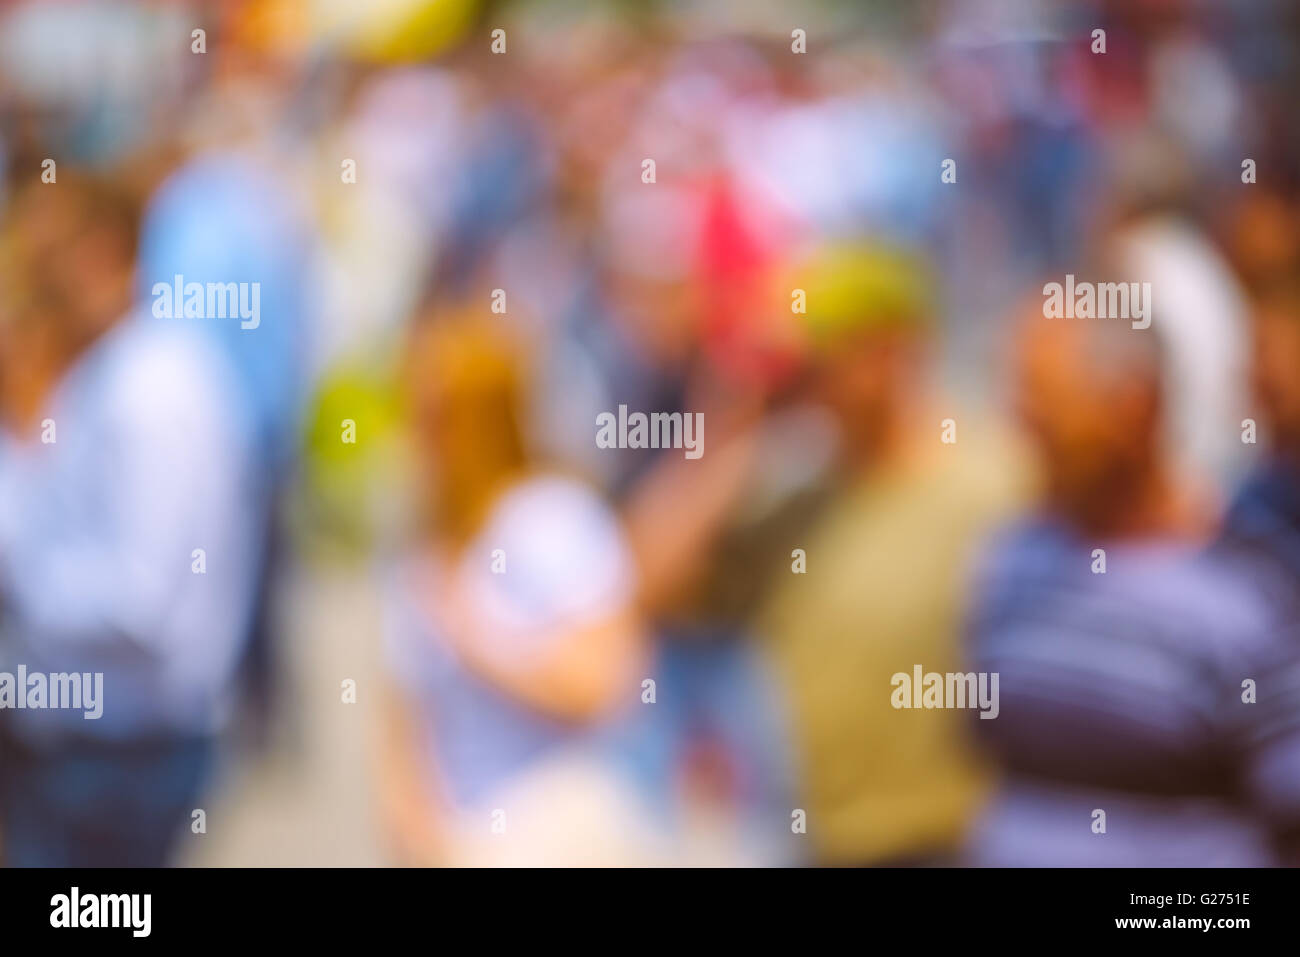 Abstract blur crowd of people on the street, unrecognizable everyday ordinary men and women as blur urban background. - Stock Image